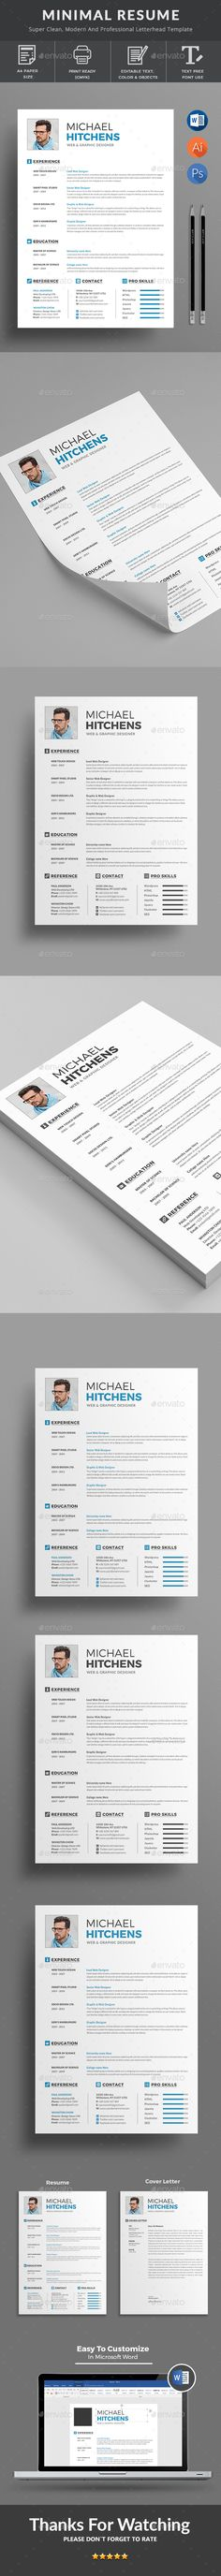 Clean Resume Template PSD design Download